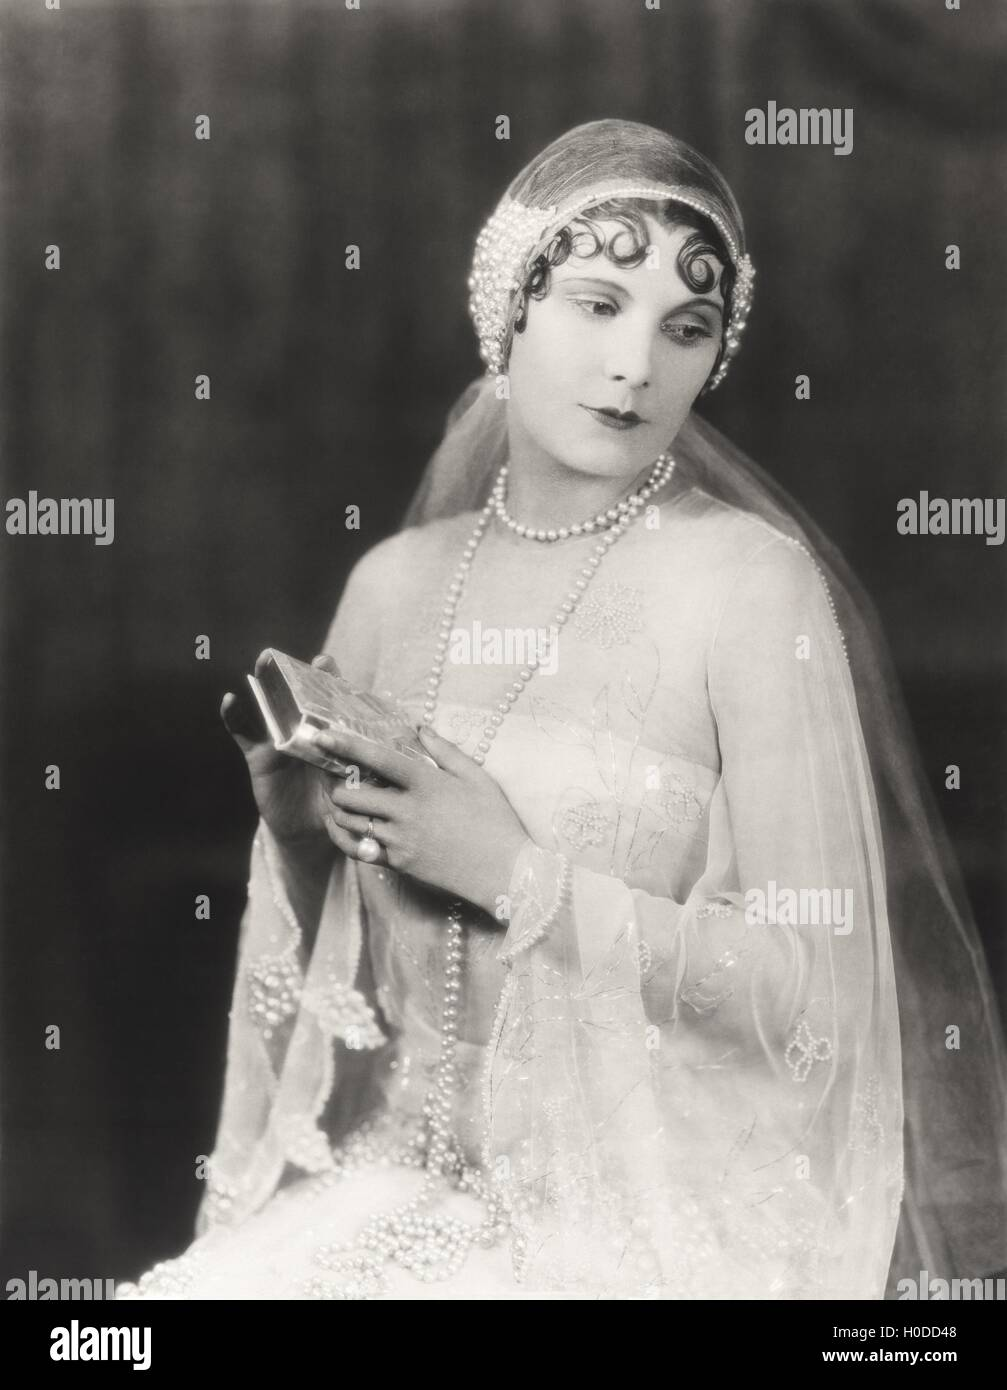 Bride holding clutch purse - Stock Image